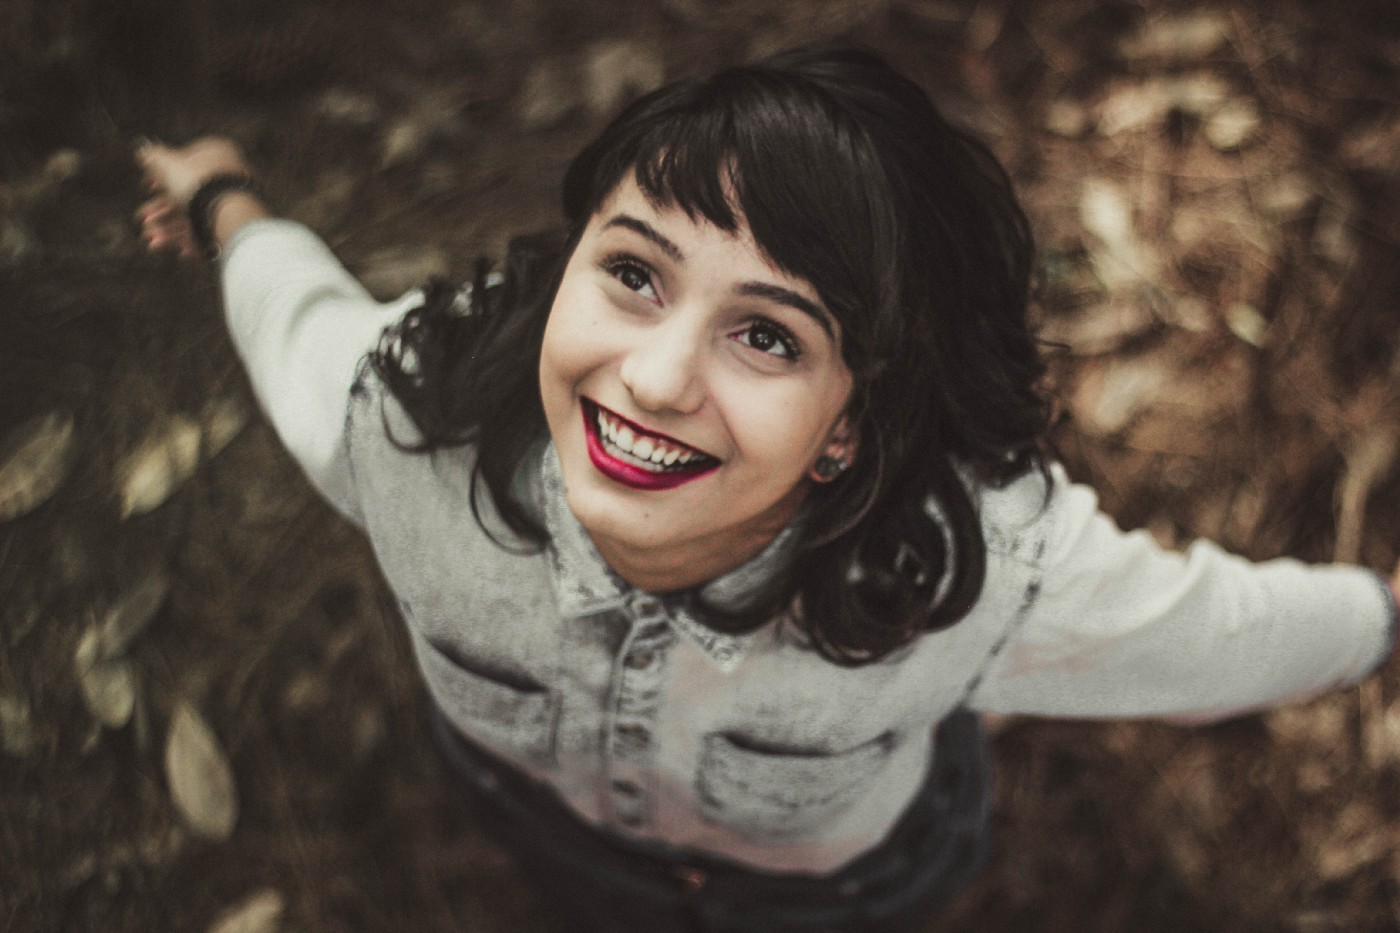 A young woman with short dark brown hair, wearing a bleached denim jacket and dark red lipstick is standing on a bed of brown autumn leaves with her arms outstretched and looking up with a big hopeful smile. I Learned the Value of Love From a Superhero Movie. The silver screen can do wonders for ADHDers like me. What is the true value of love to you? ADHD and love. ADHD and relationships. Value of love.